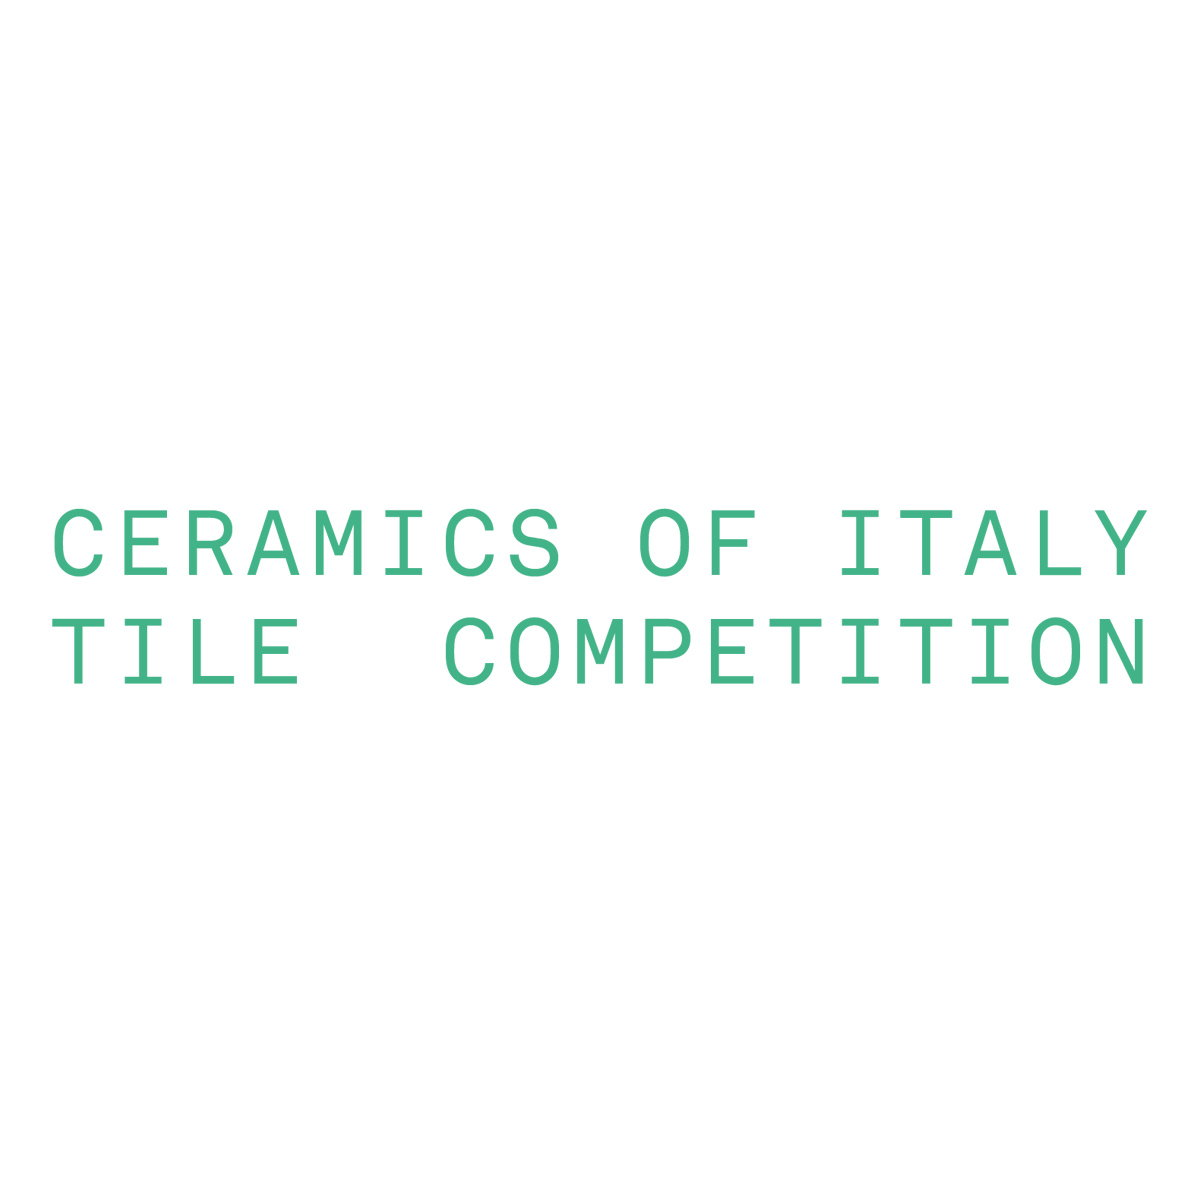 Ceramics of Italy Launches 2021 Tile Competition